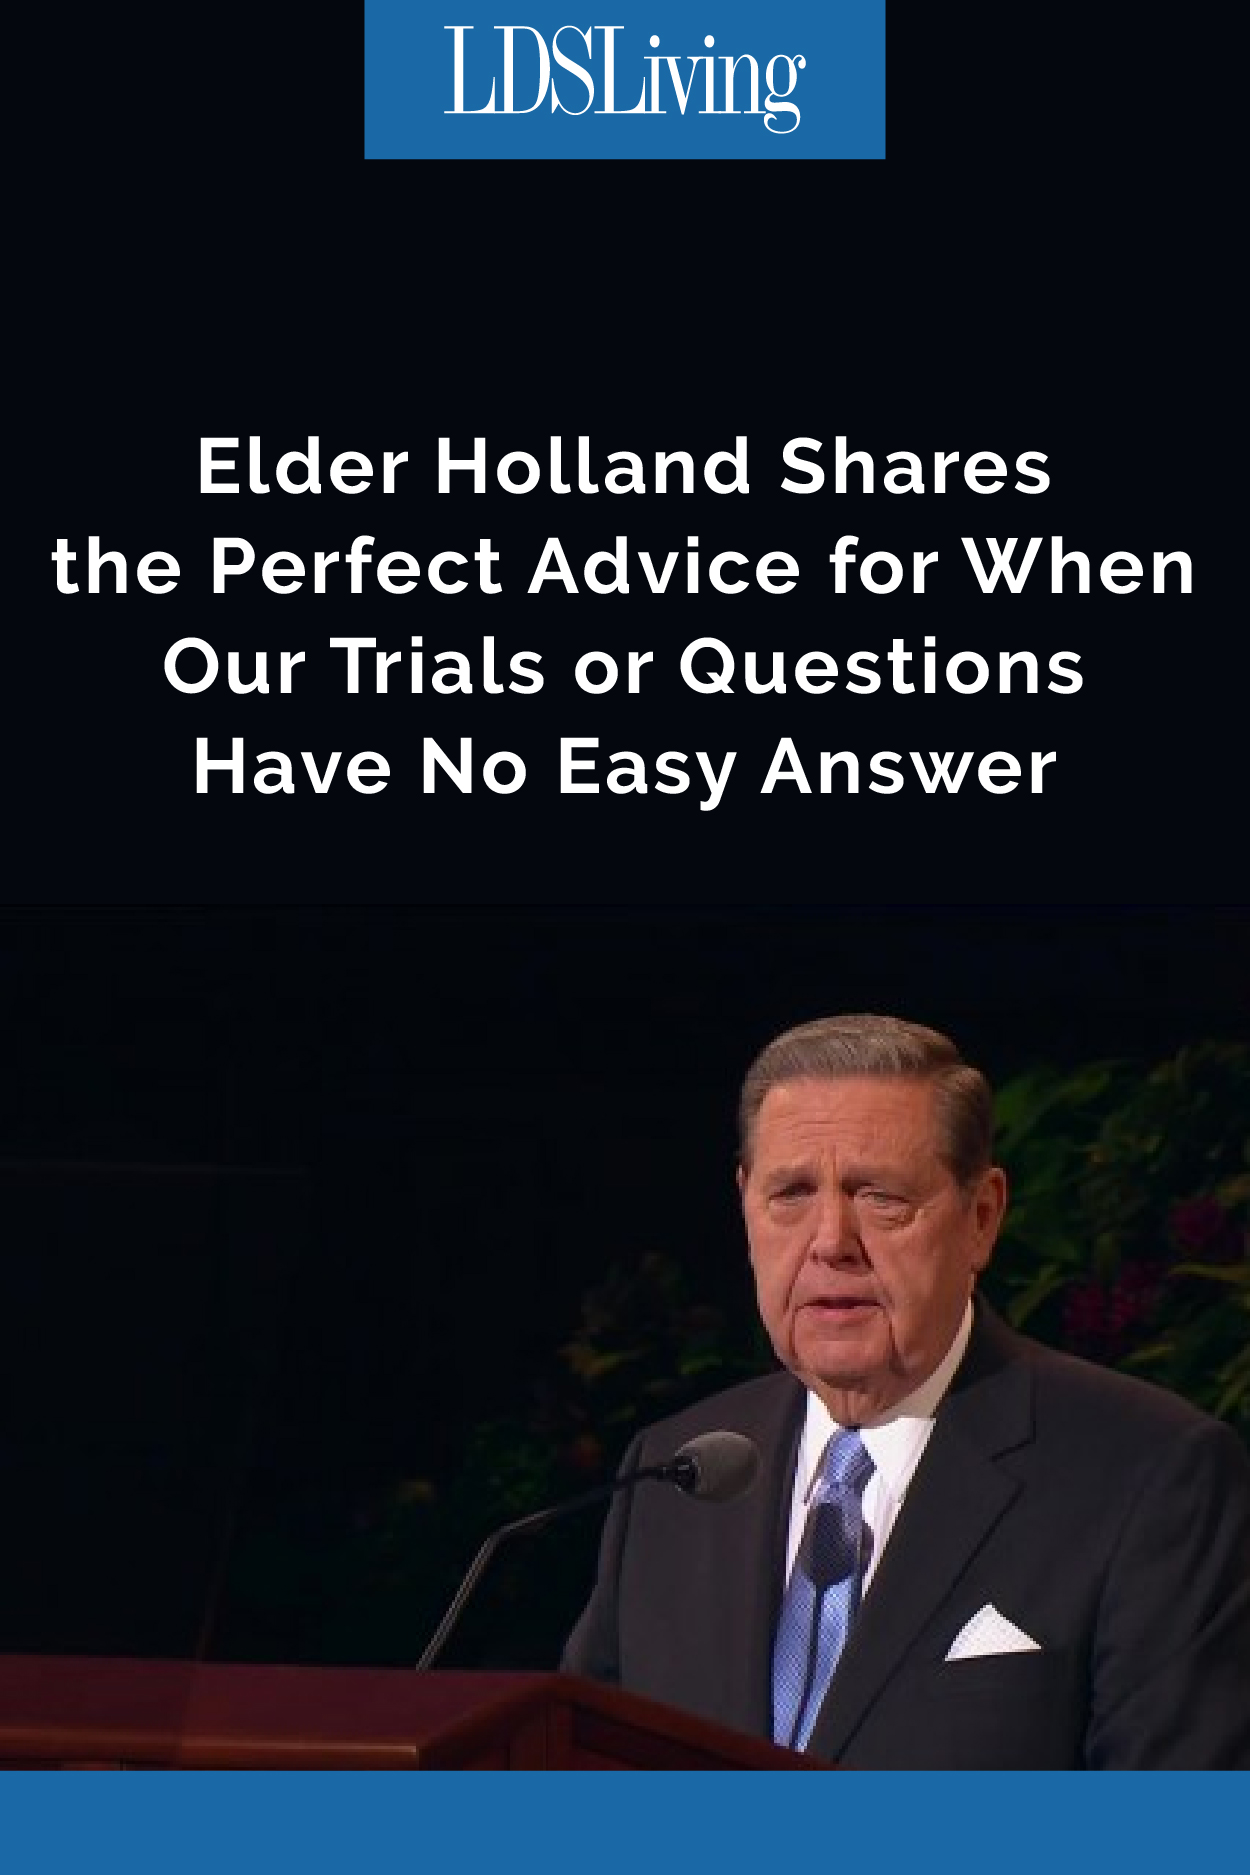 For those wondering if they can make it through a trial, for those wondering if they can stay in the Church, Elder Jeffrey R. Holland has the perfect quote from Joseph Smith and inspiring counsel for you.